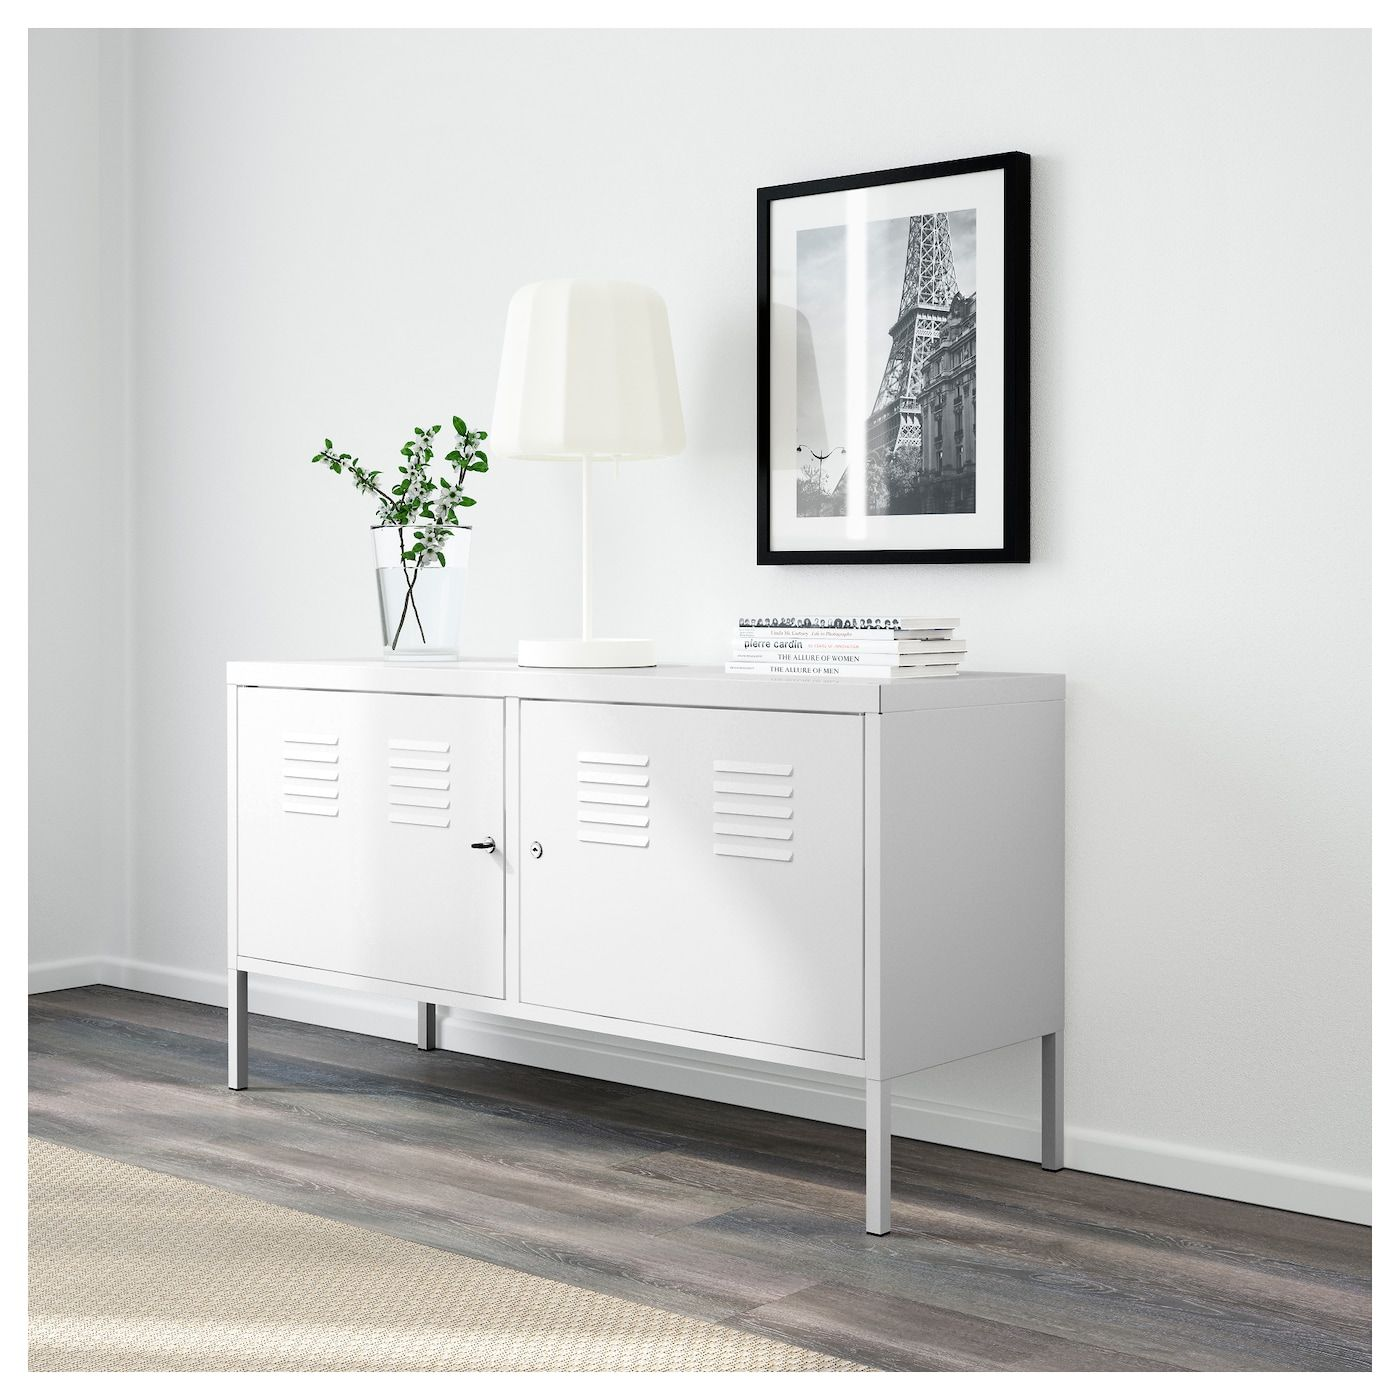 Ikea Meuble Metal Ikea Ps Cabinet White In 2019 Cottage Ikea Ps Cabinet Ikea